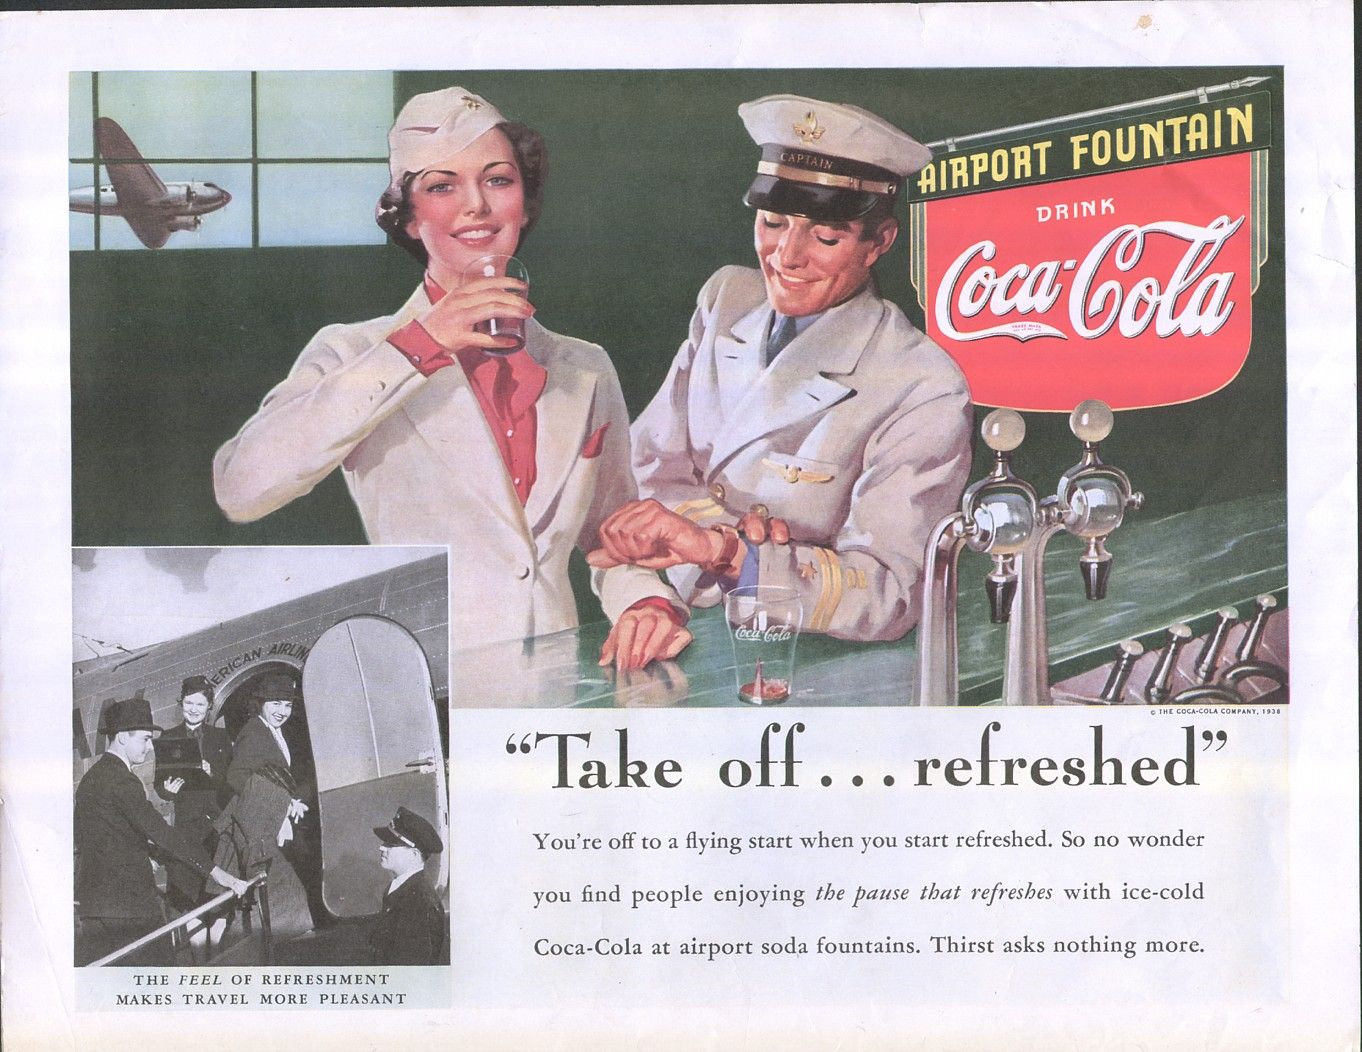 Vintage deco ad coca cola airport take off refreshed pilot and stewardest image1